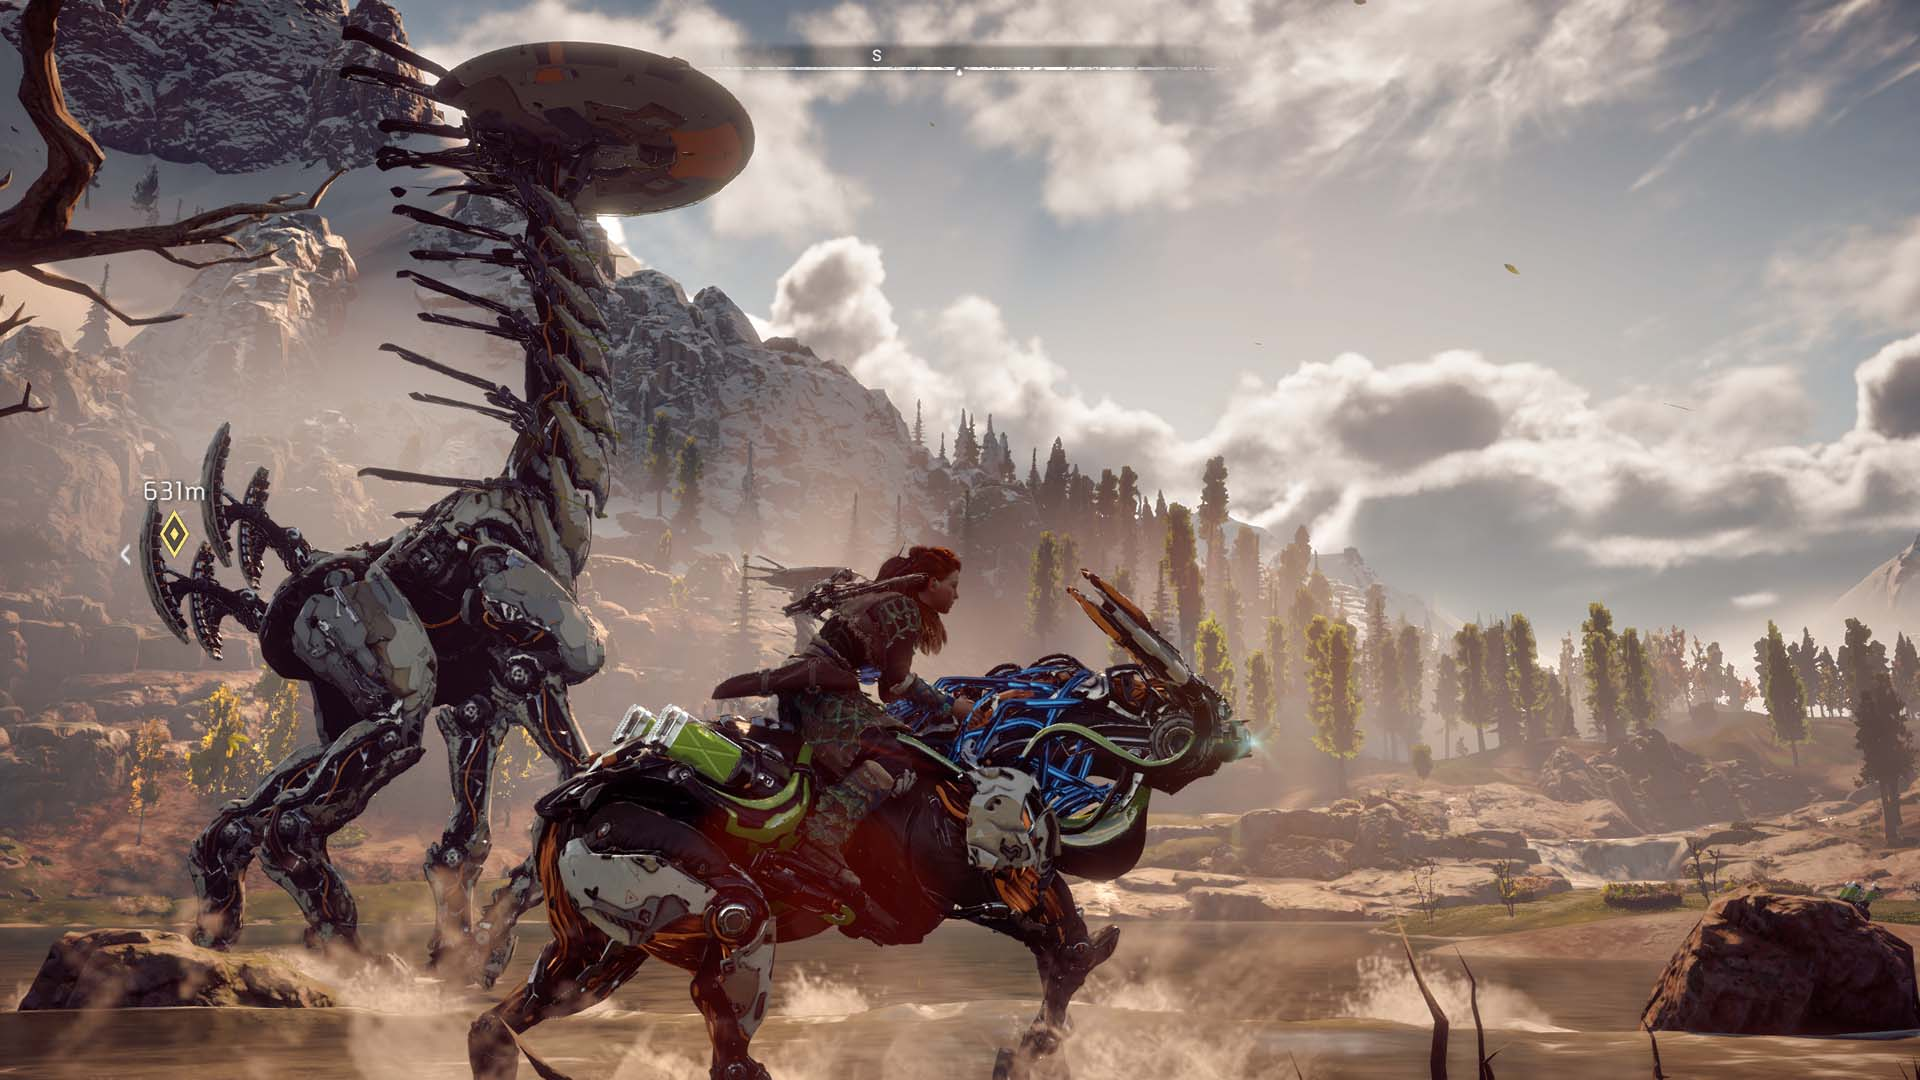 Horizon Zero Dawn: How To Ride Robots & Unlock Permanent Mounts